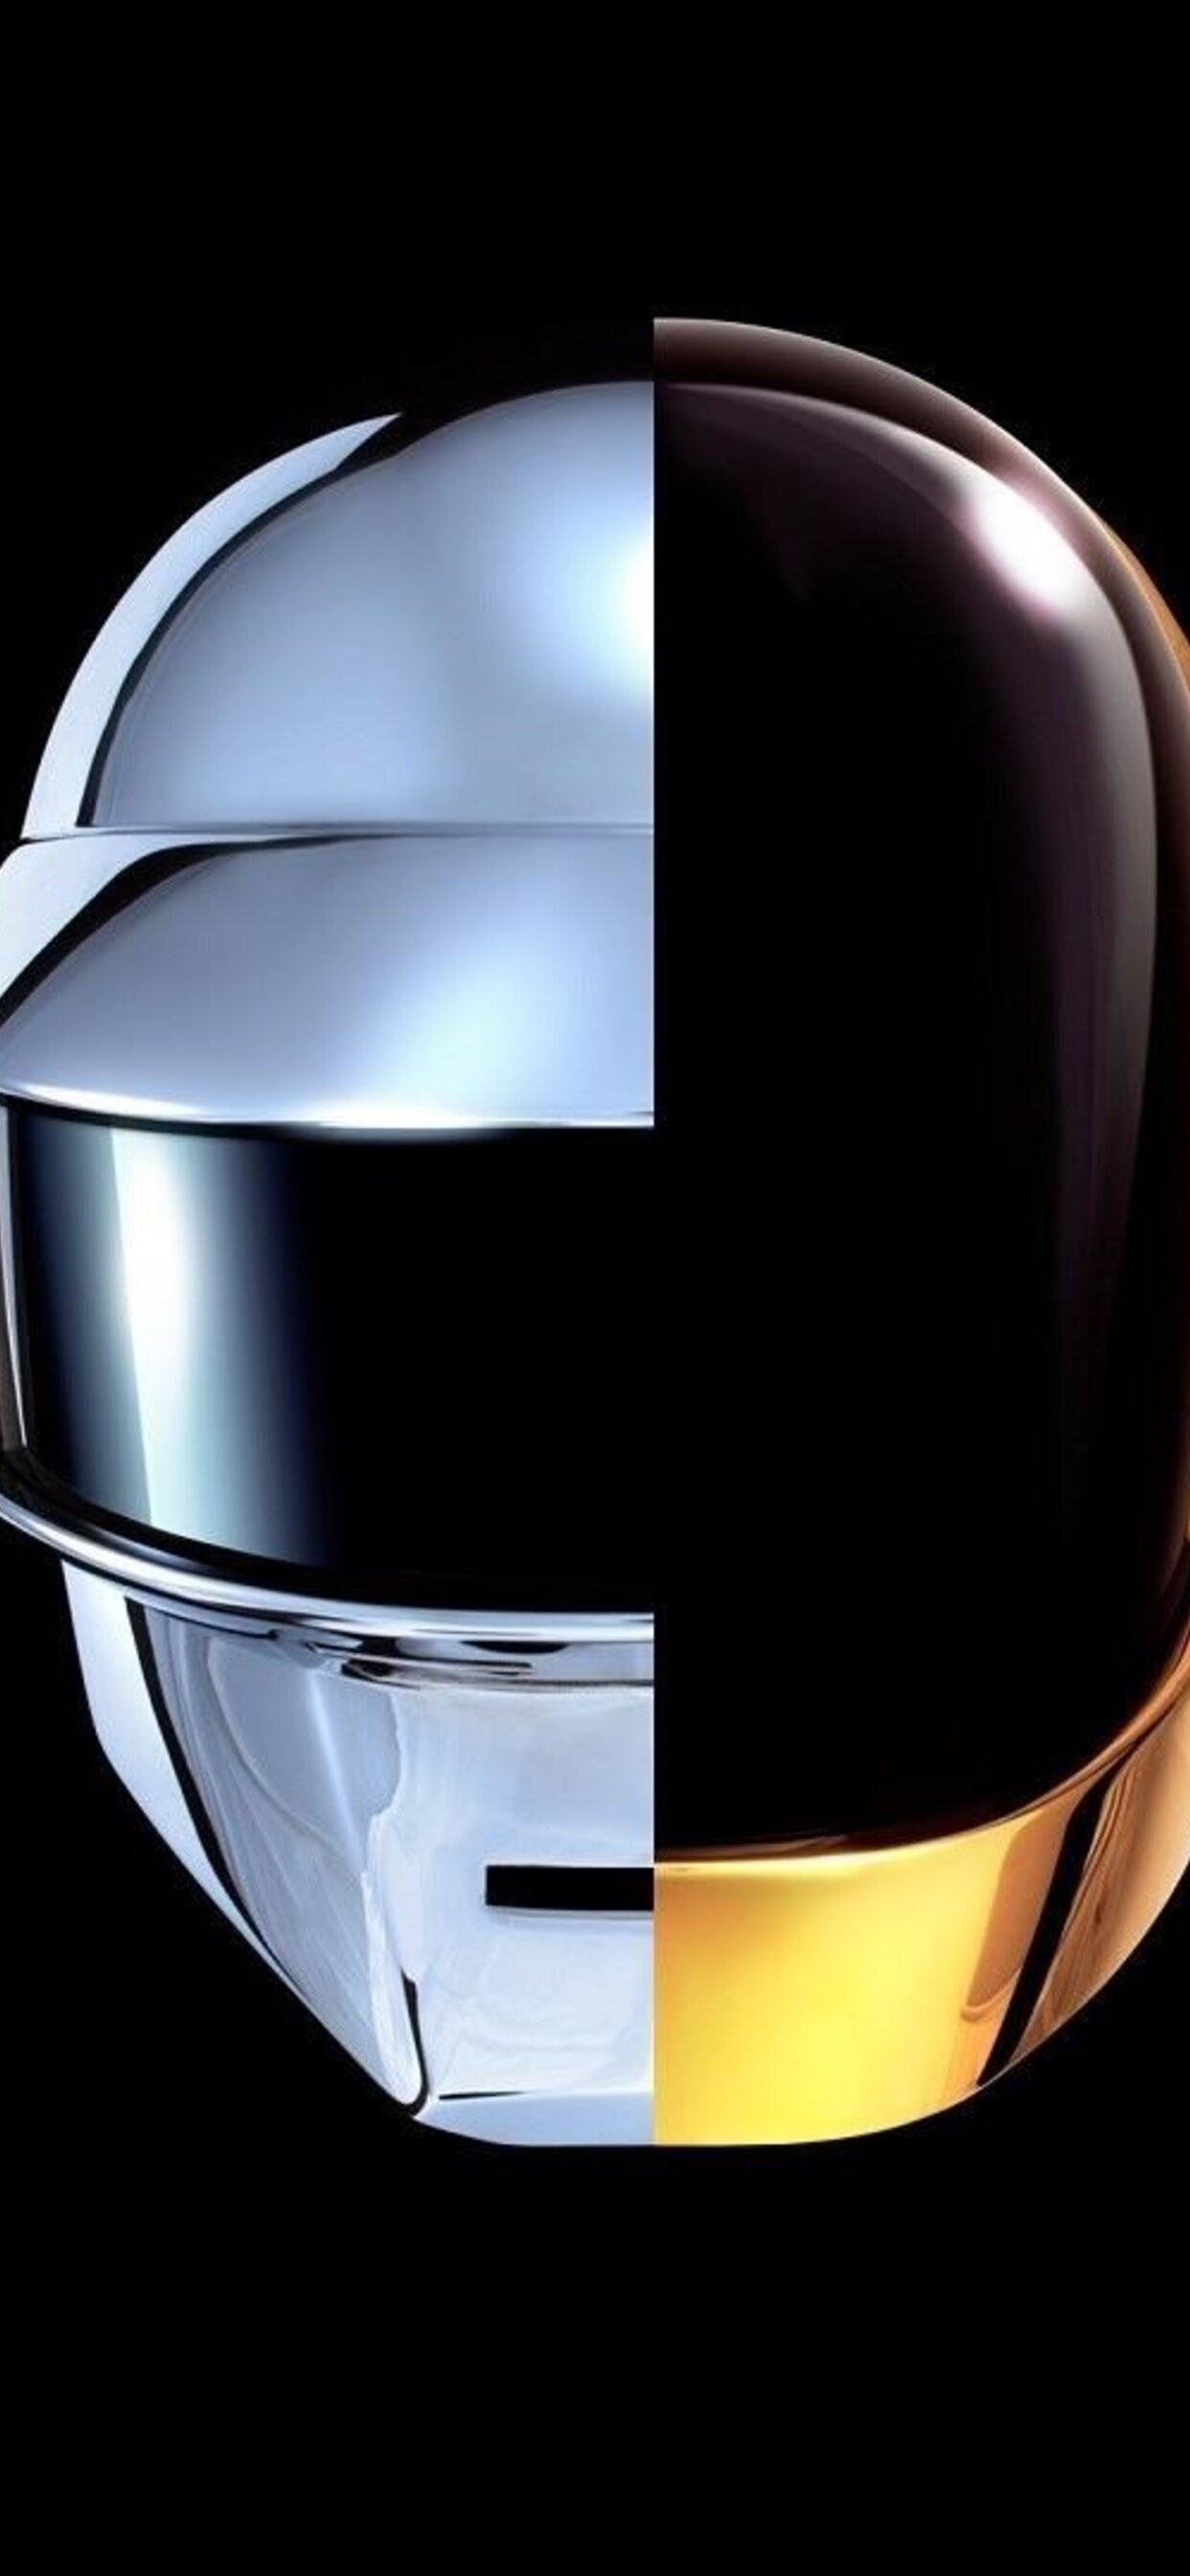 1242x2688 Daft Punk Iphone Xs Max Hd 4k Wallpapers Images